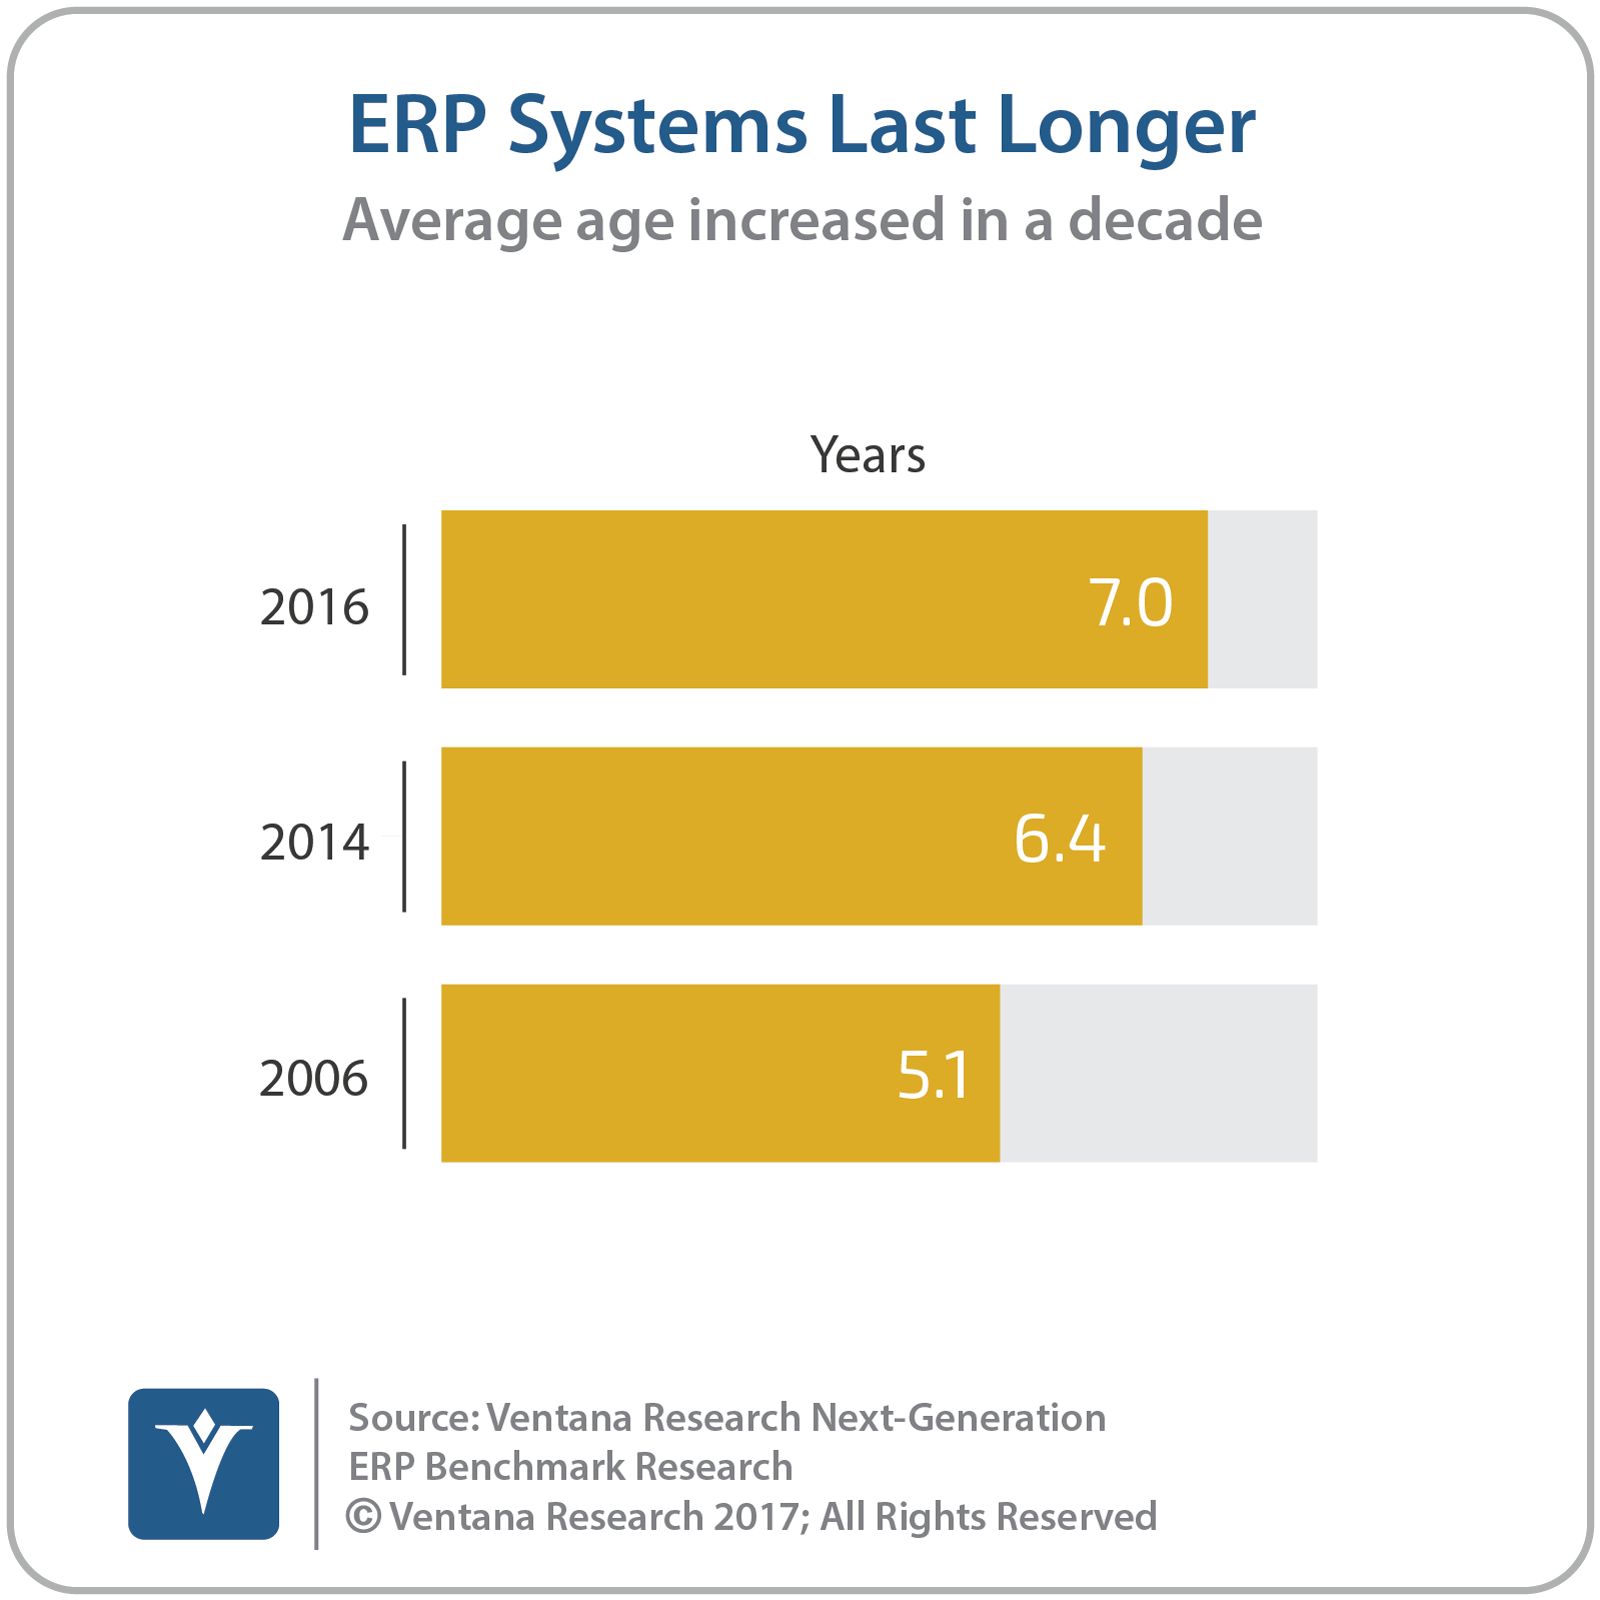 vr_NG_ERP_general_01_ERP_systems_last_longer.png